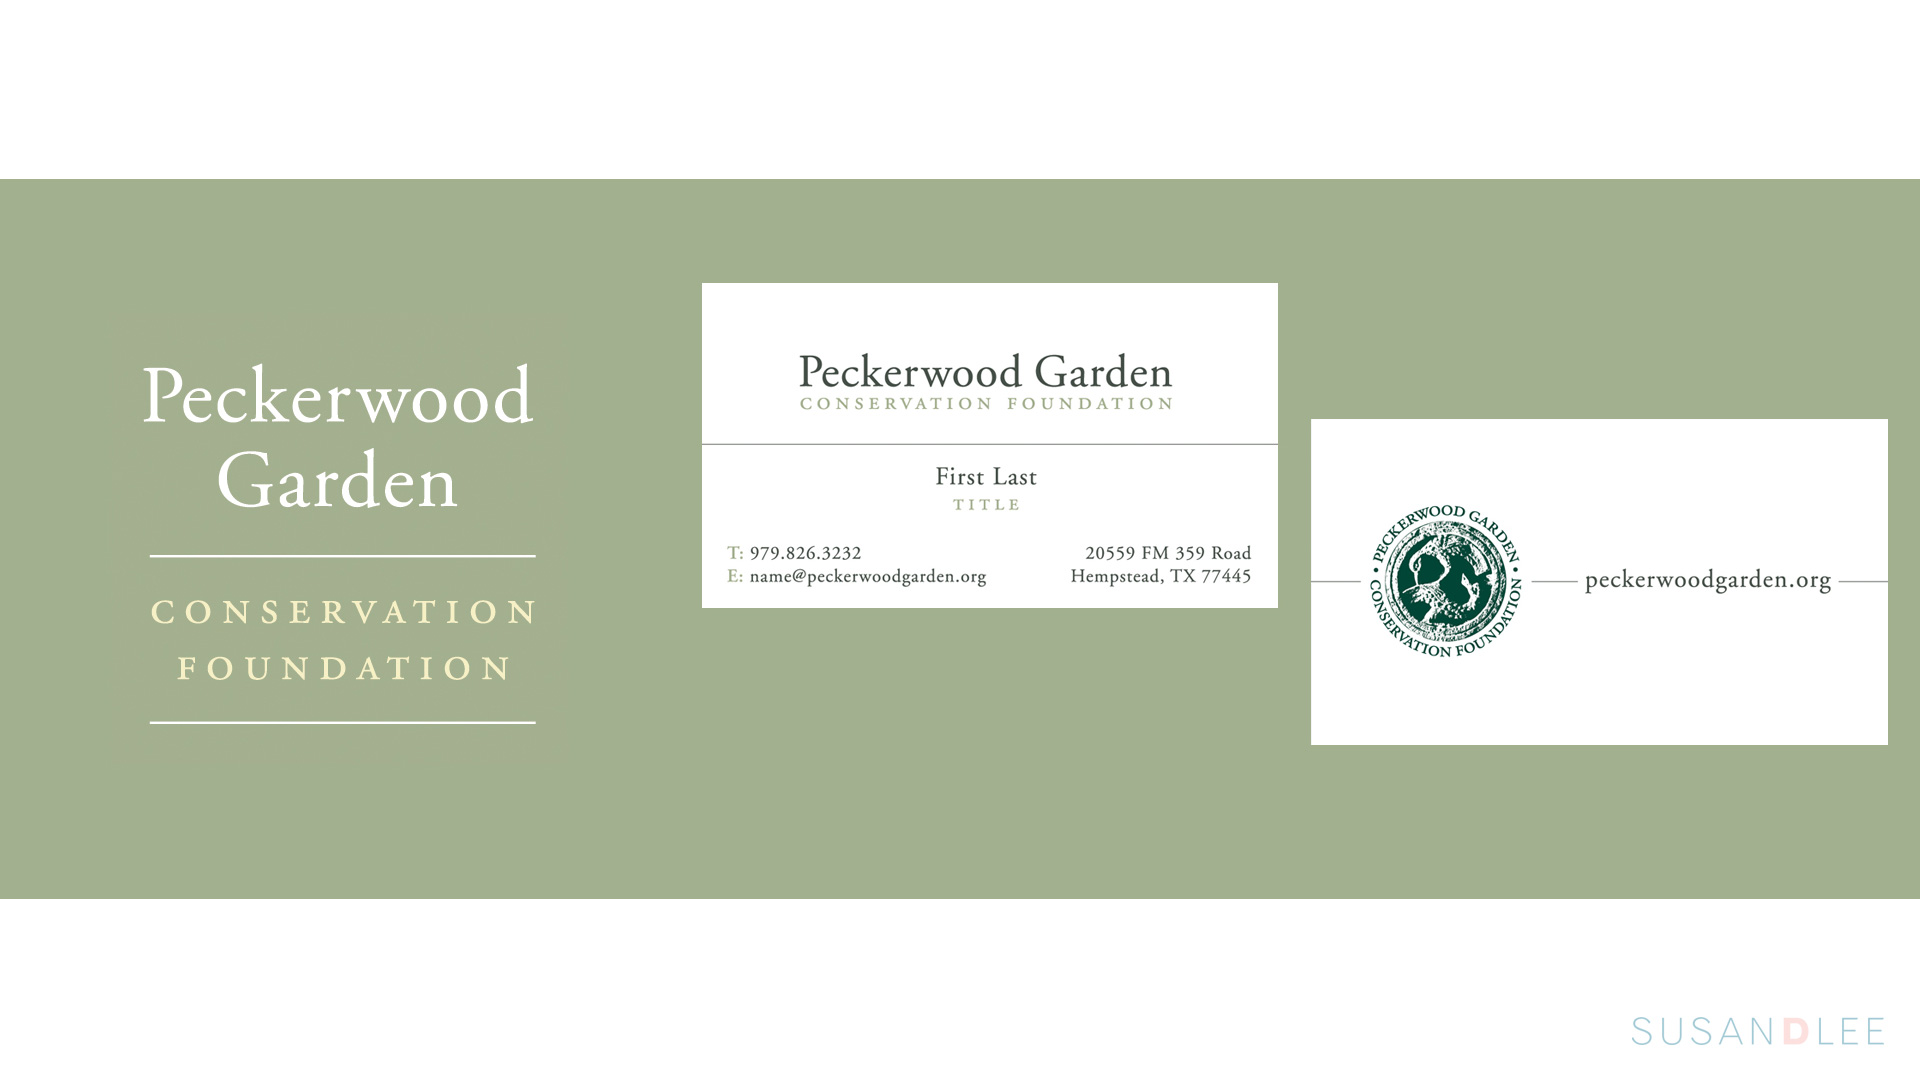 Peckerwood Garden